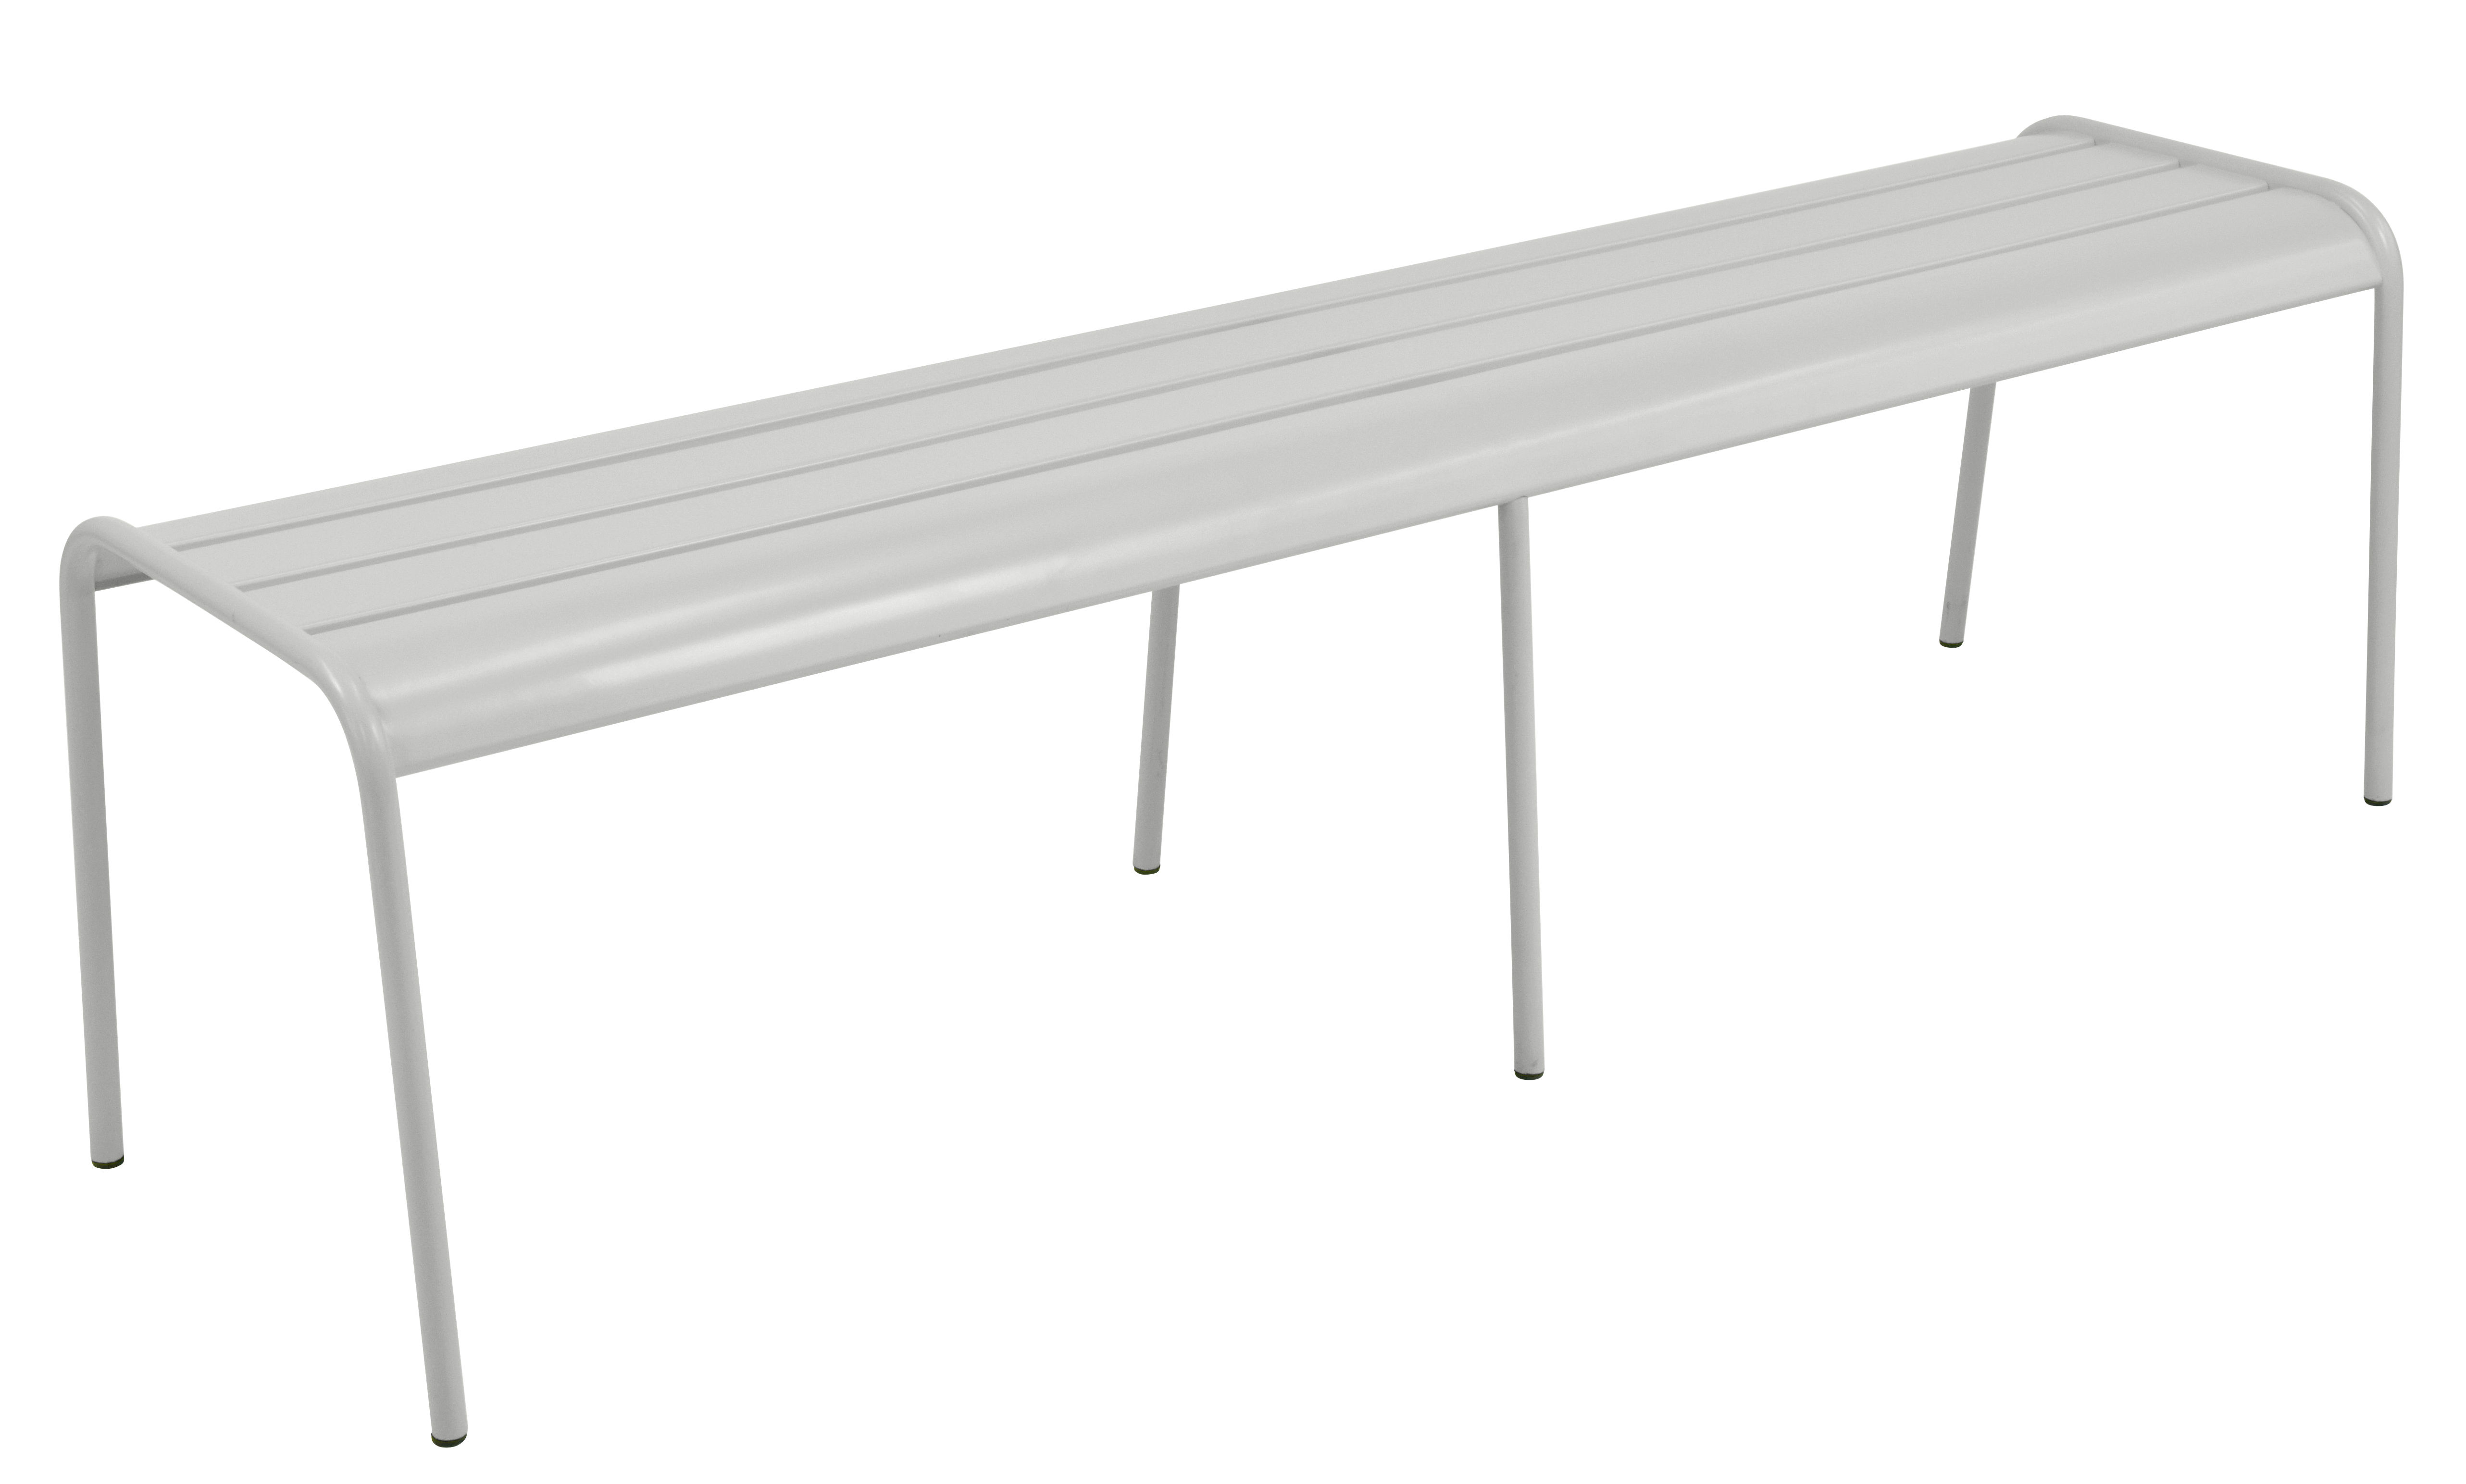 Furniture - Benches - Monceau XL Bench - L 160 cm / 3 to 4 seaters by Fermob - Metal grey - Painted steel